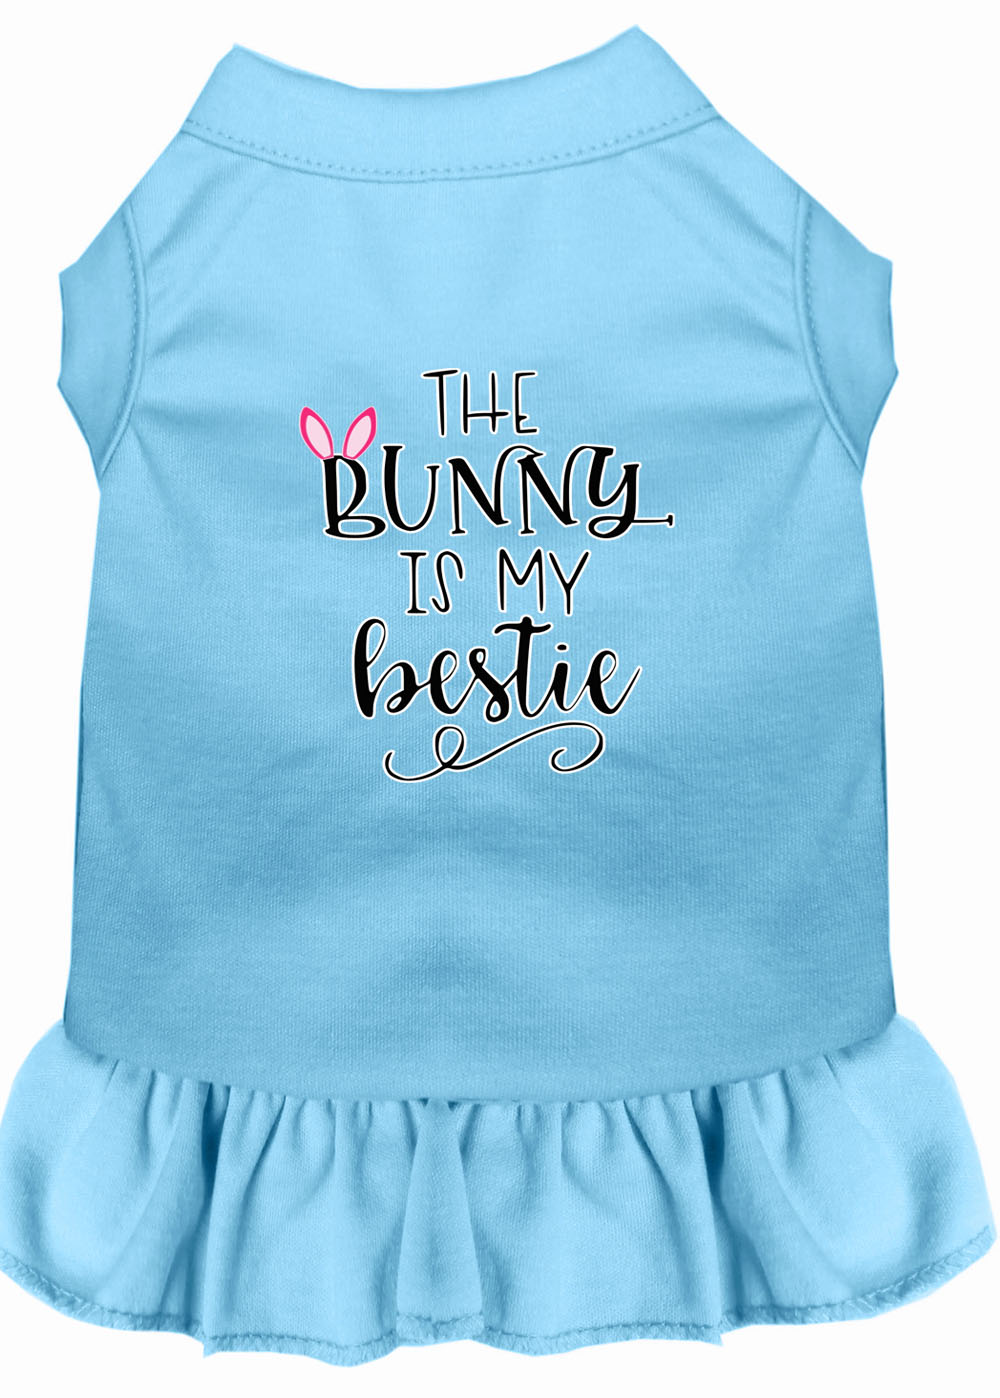 Bunny Is My Bestie Screen Print Dog Dress